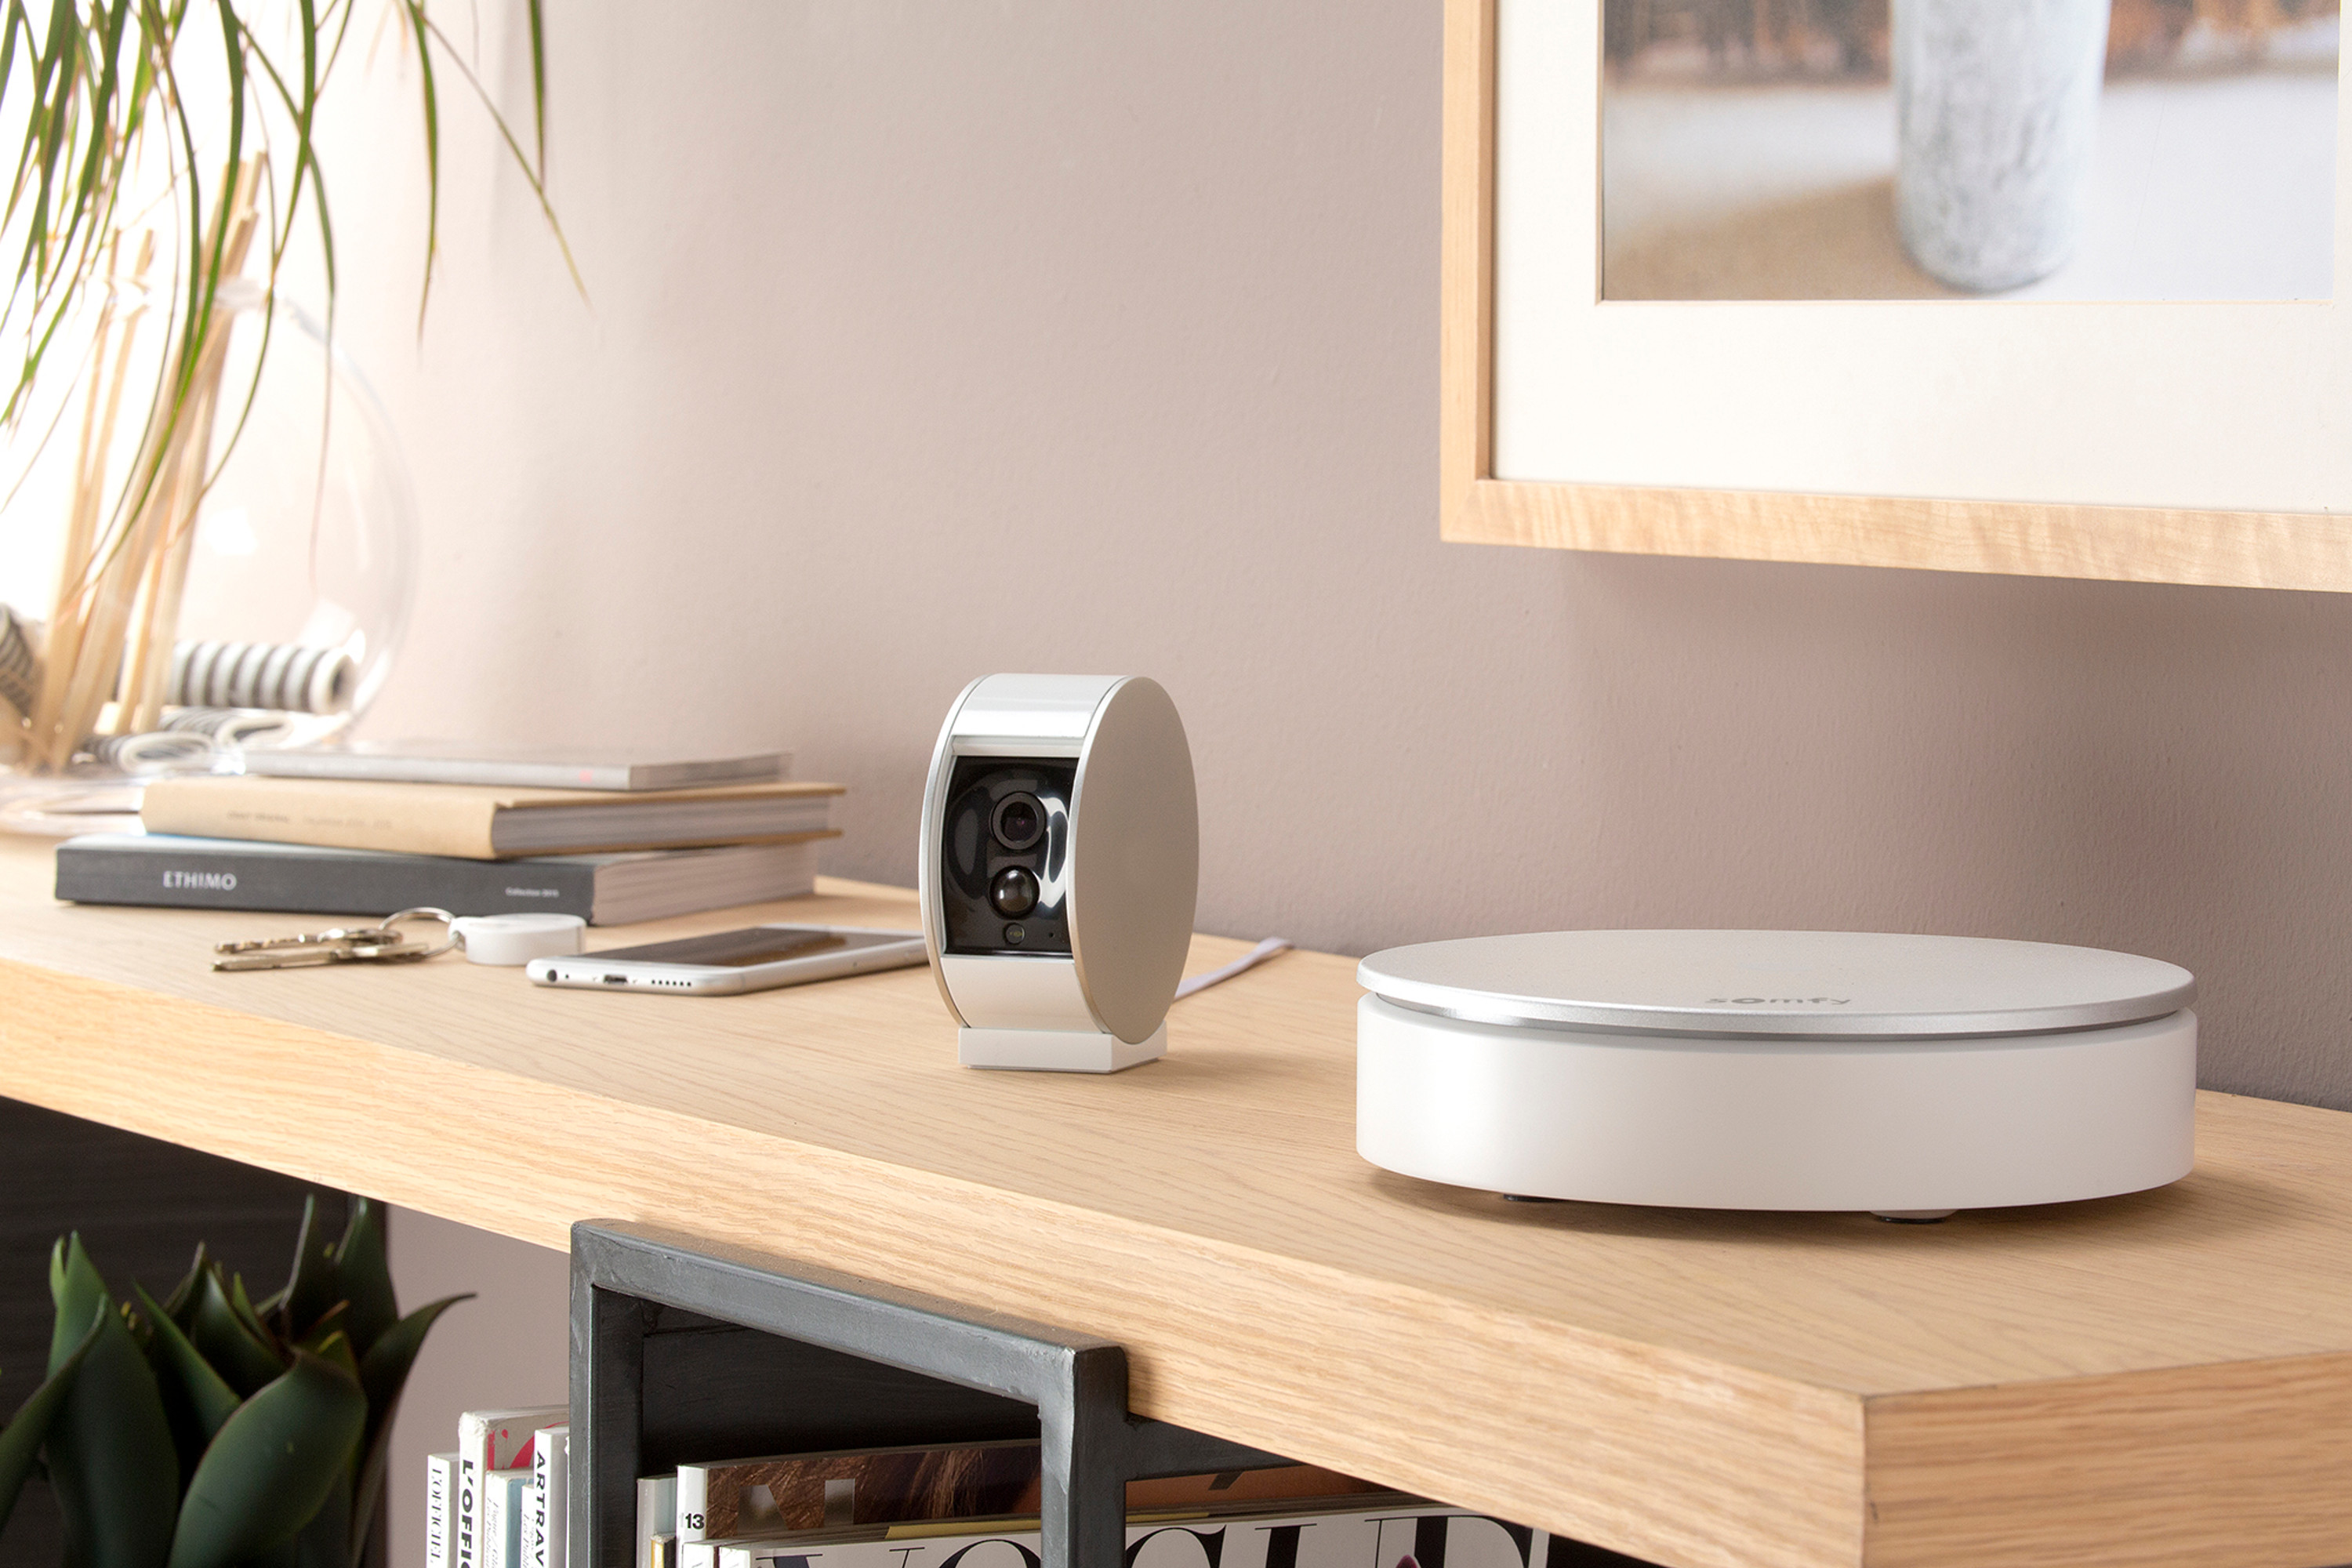 SOMFY MAKES LIFE EASIER FOR MILLIONS OF PEOPLE AROUND THE WORLD.